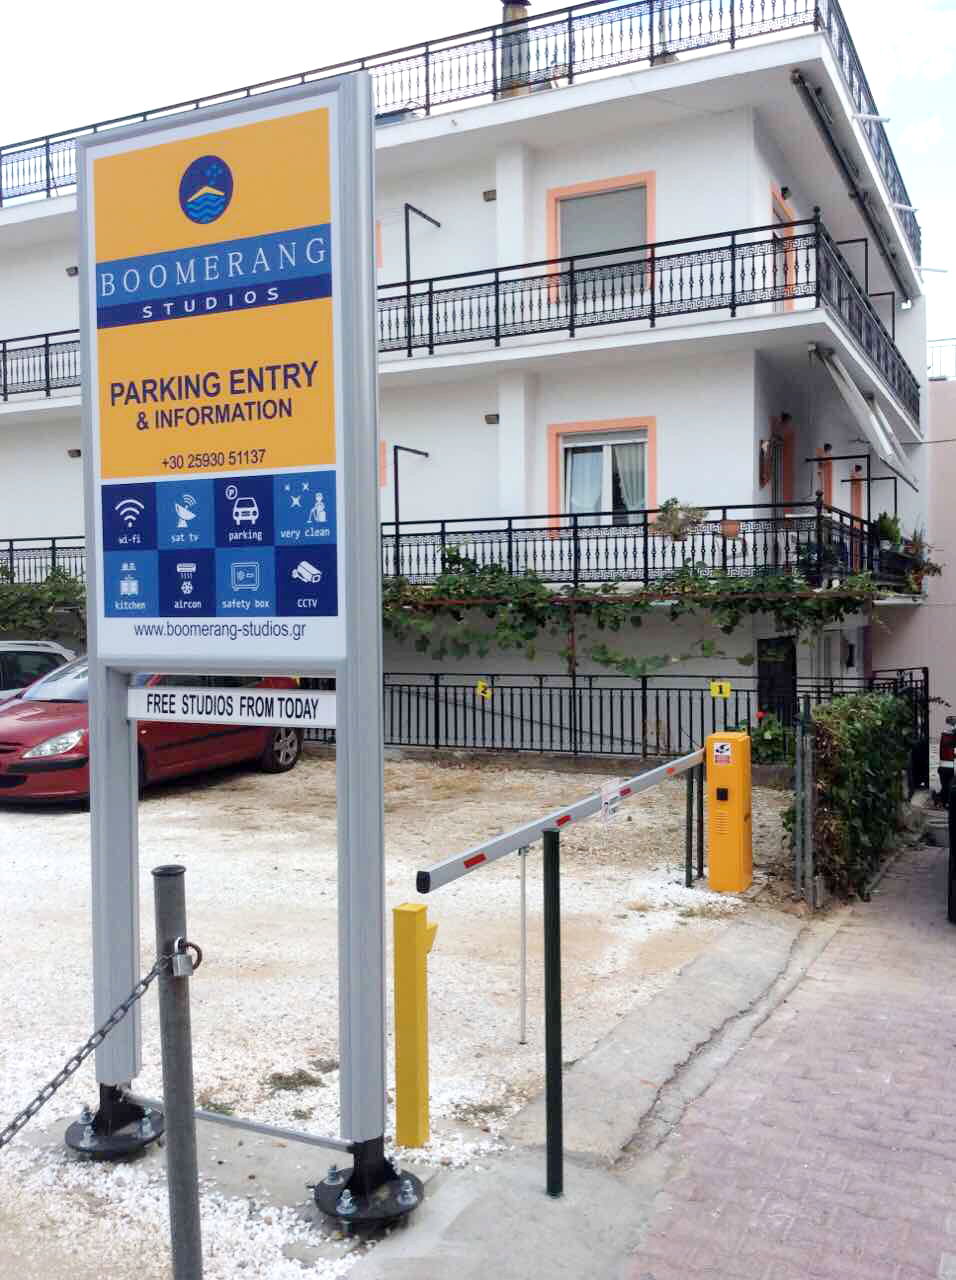 boomerang studios potos thassos parking 2